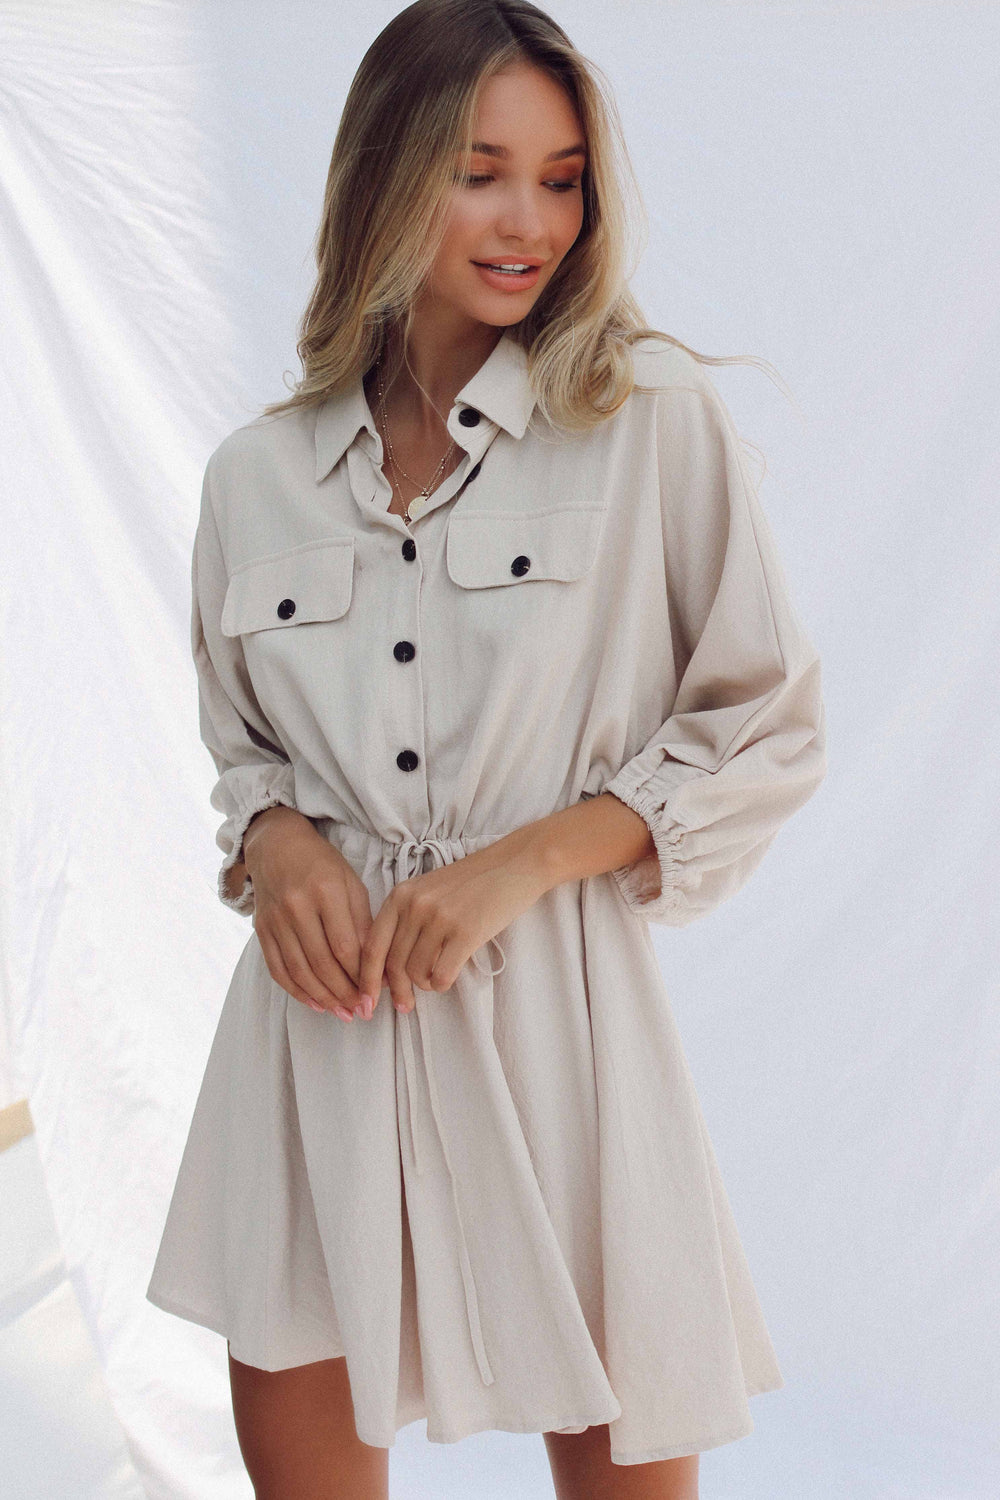 BONNIE DRESS - Chic Le Frique